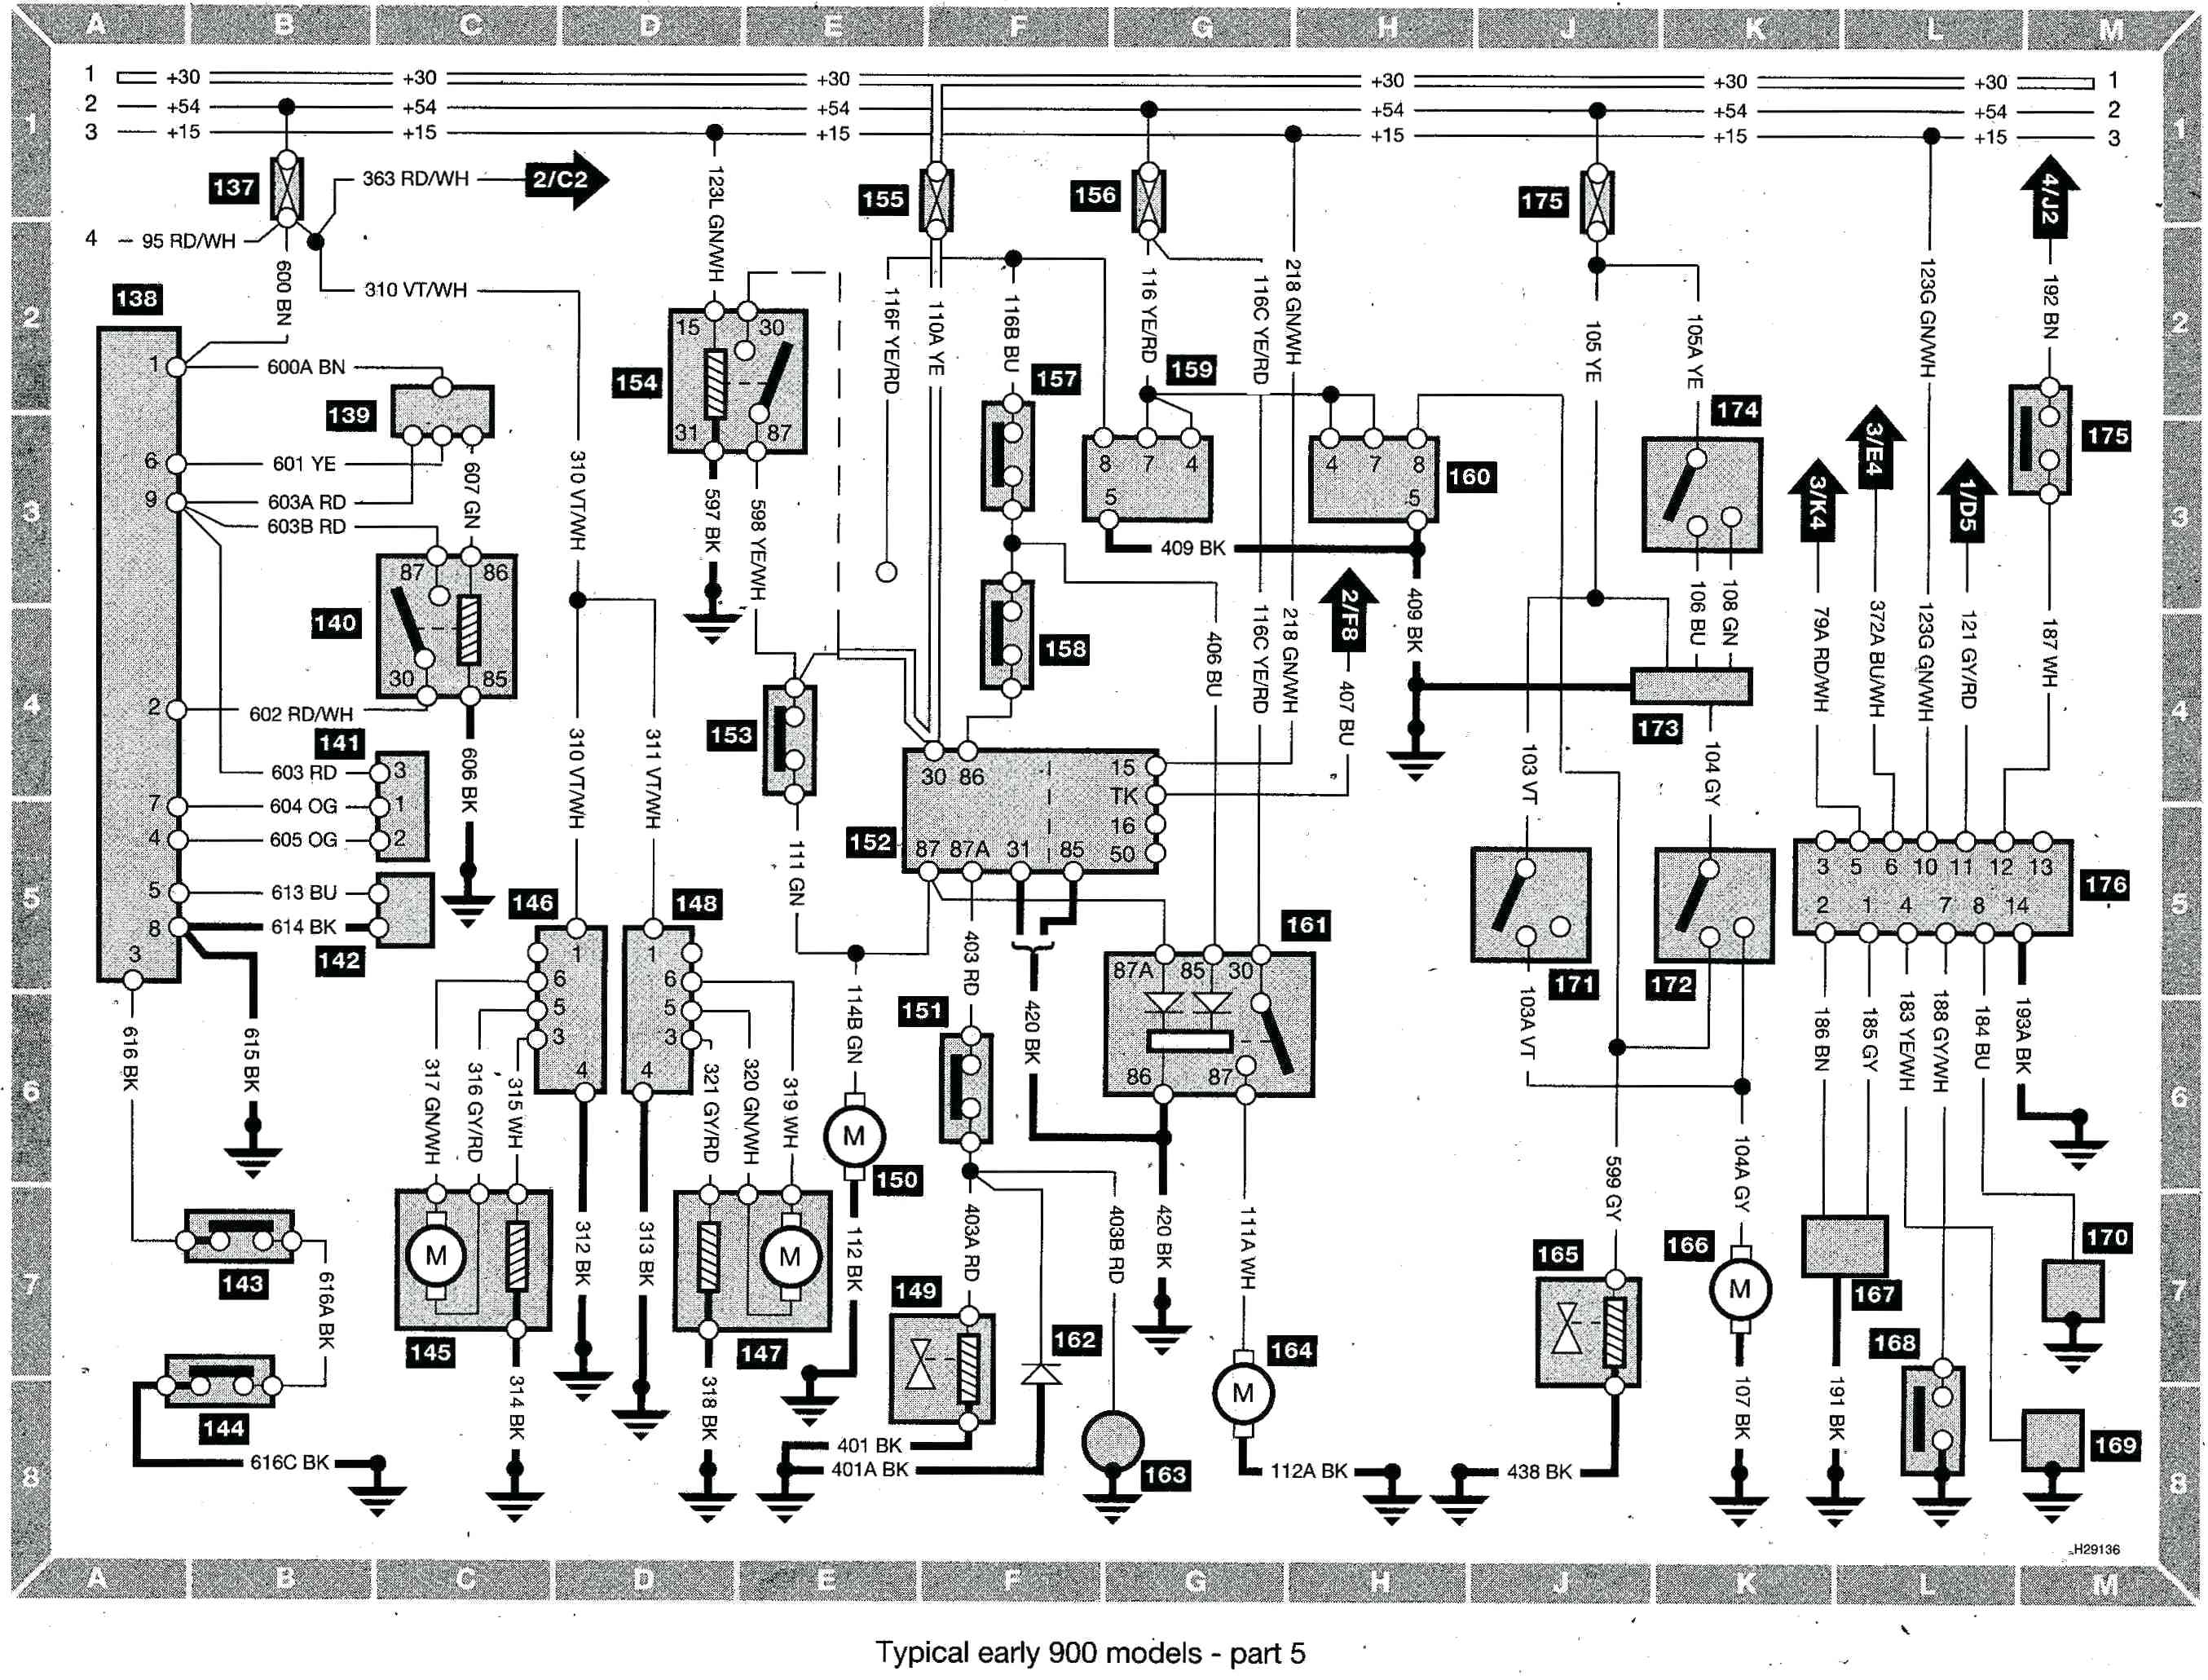 1997 Saab 900 Radio Wiring Diagram